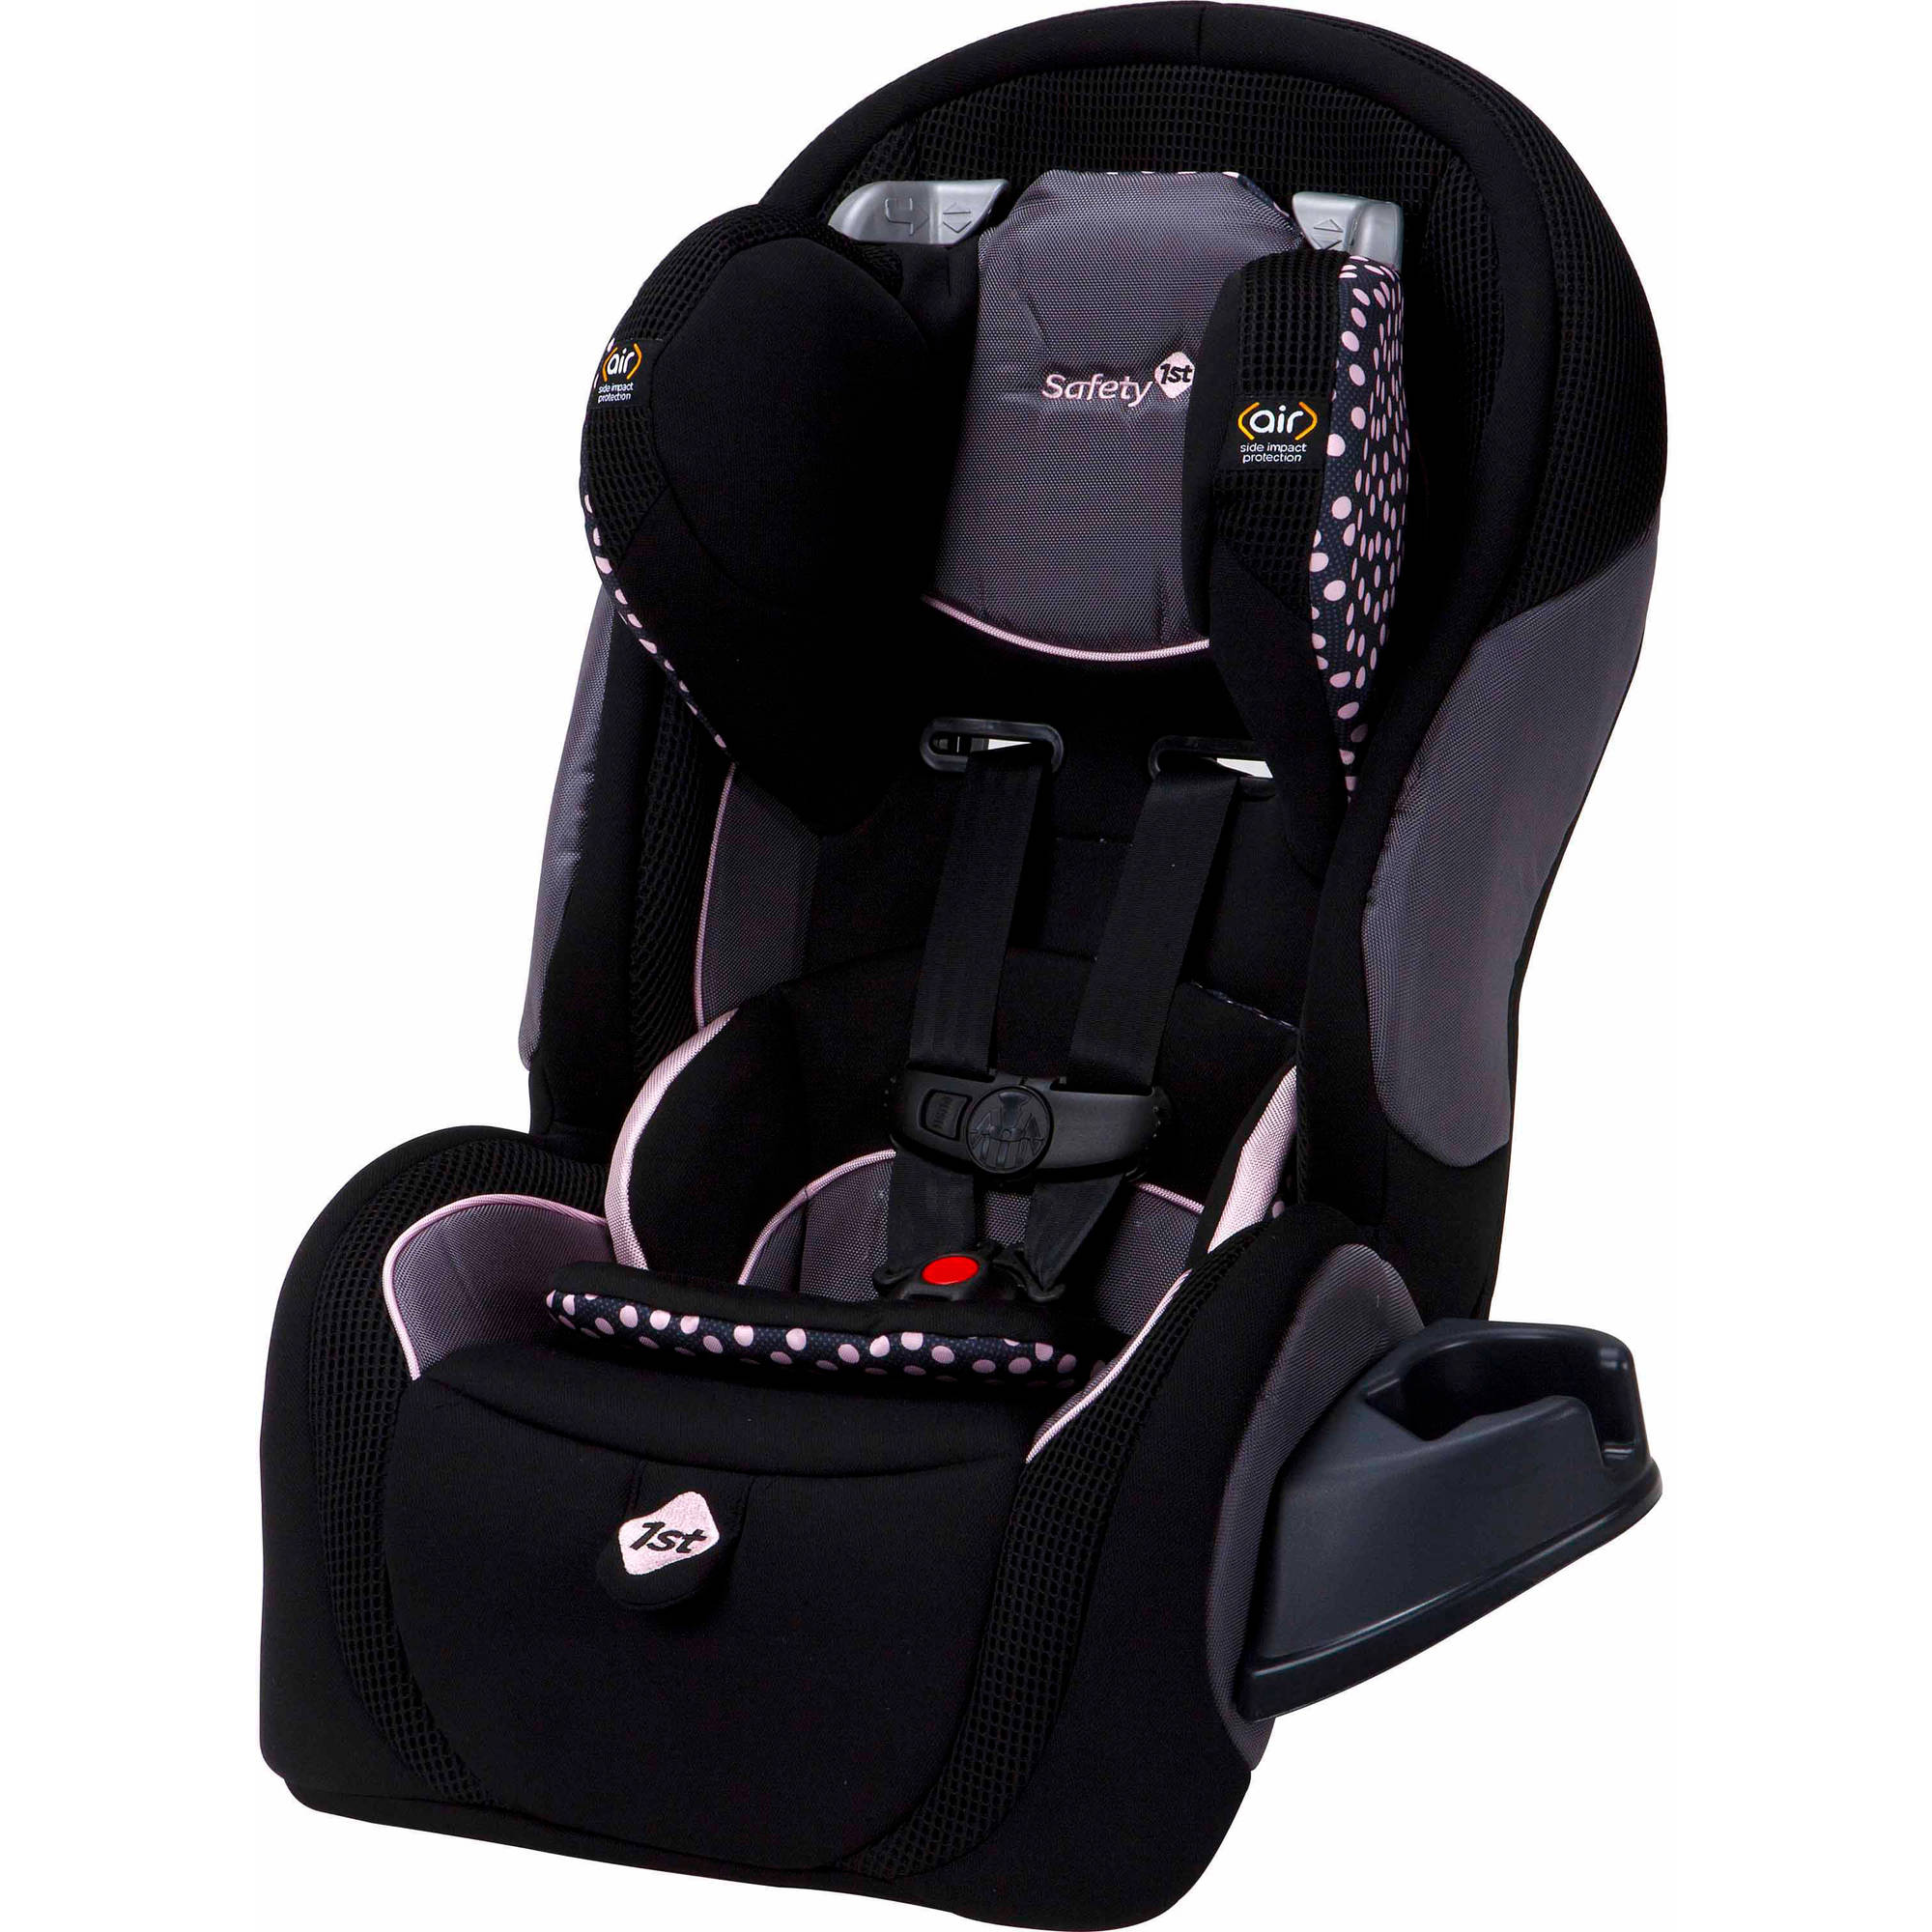 Safety 1st Complete Air 65 Convertible Car Seat, Pink Pearl